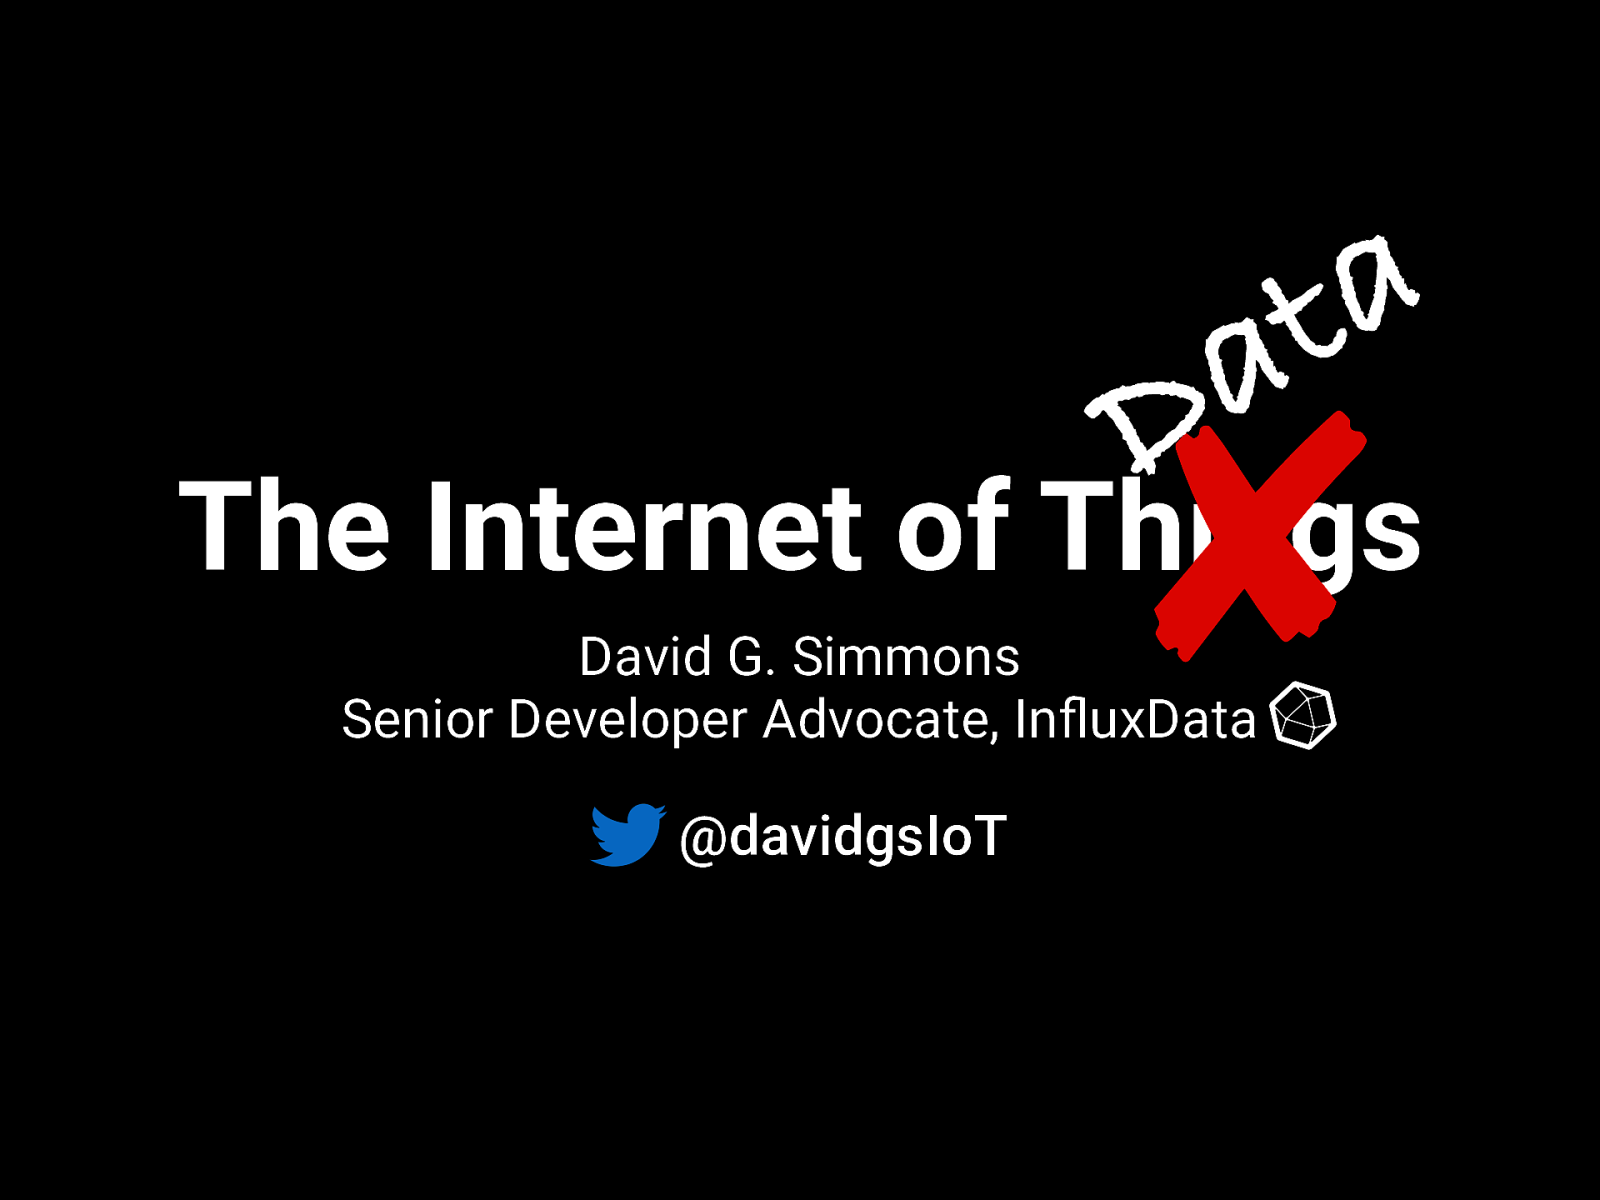 The Internet of Data